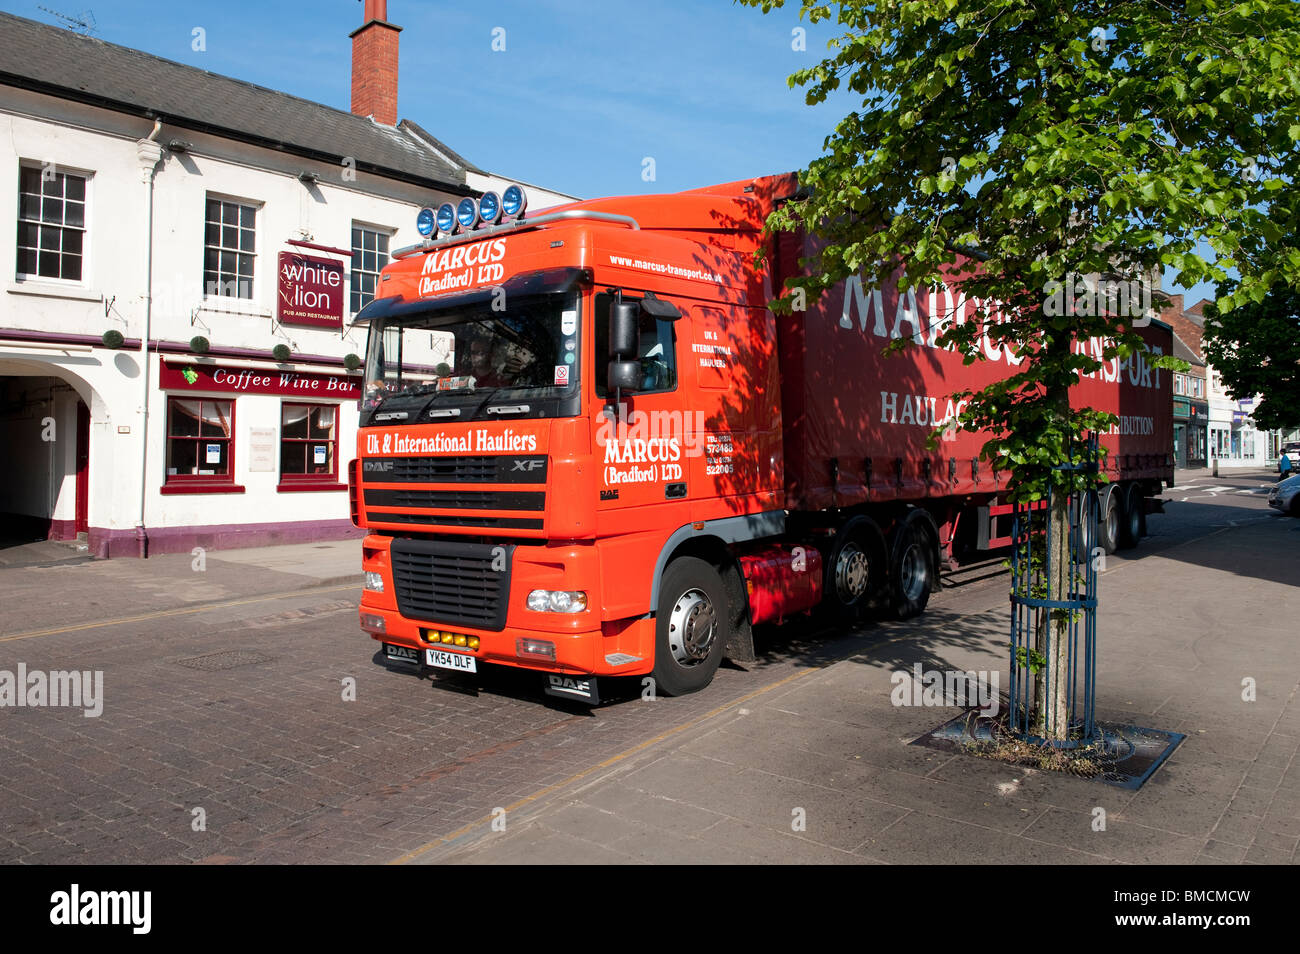 DAF HGV lorry driving through the small market town of Market Harborough, England. - Stock Image